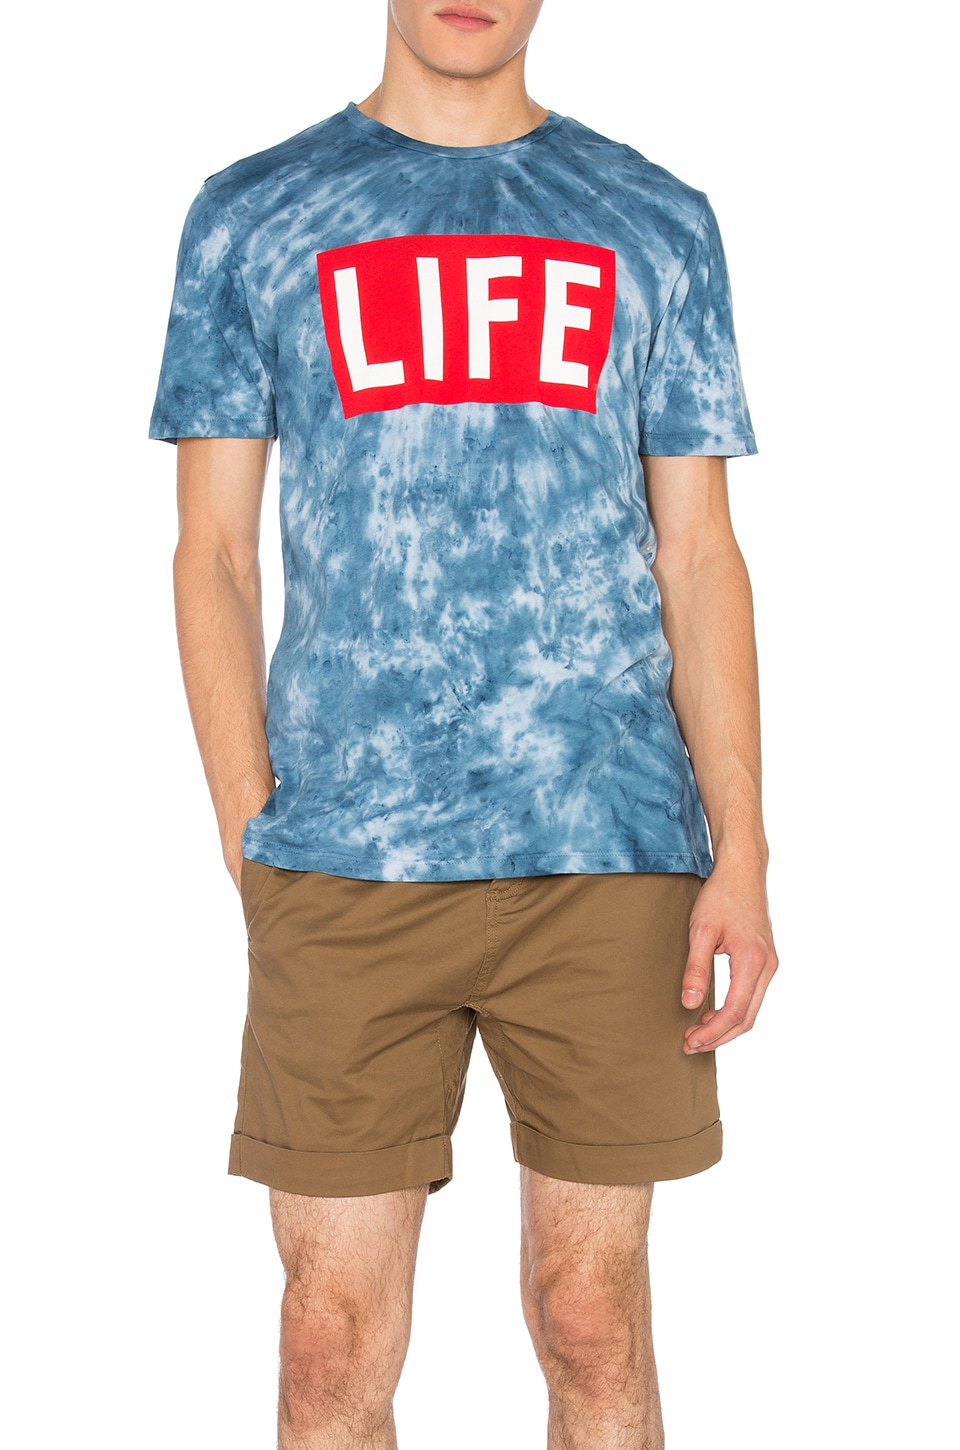 Altru Life Logo Tee in Blue Cloud Wash